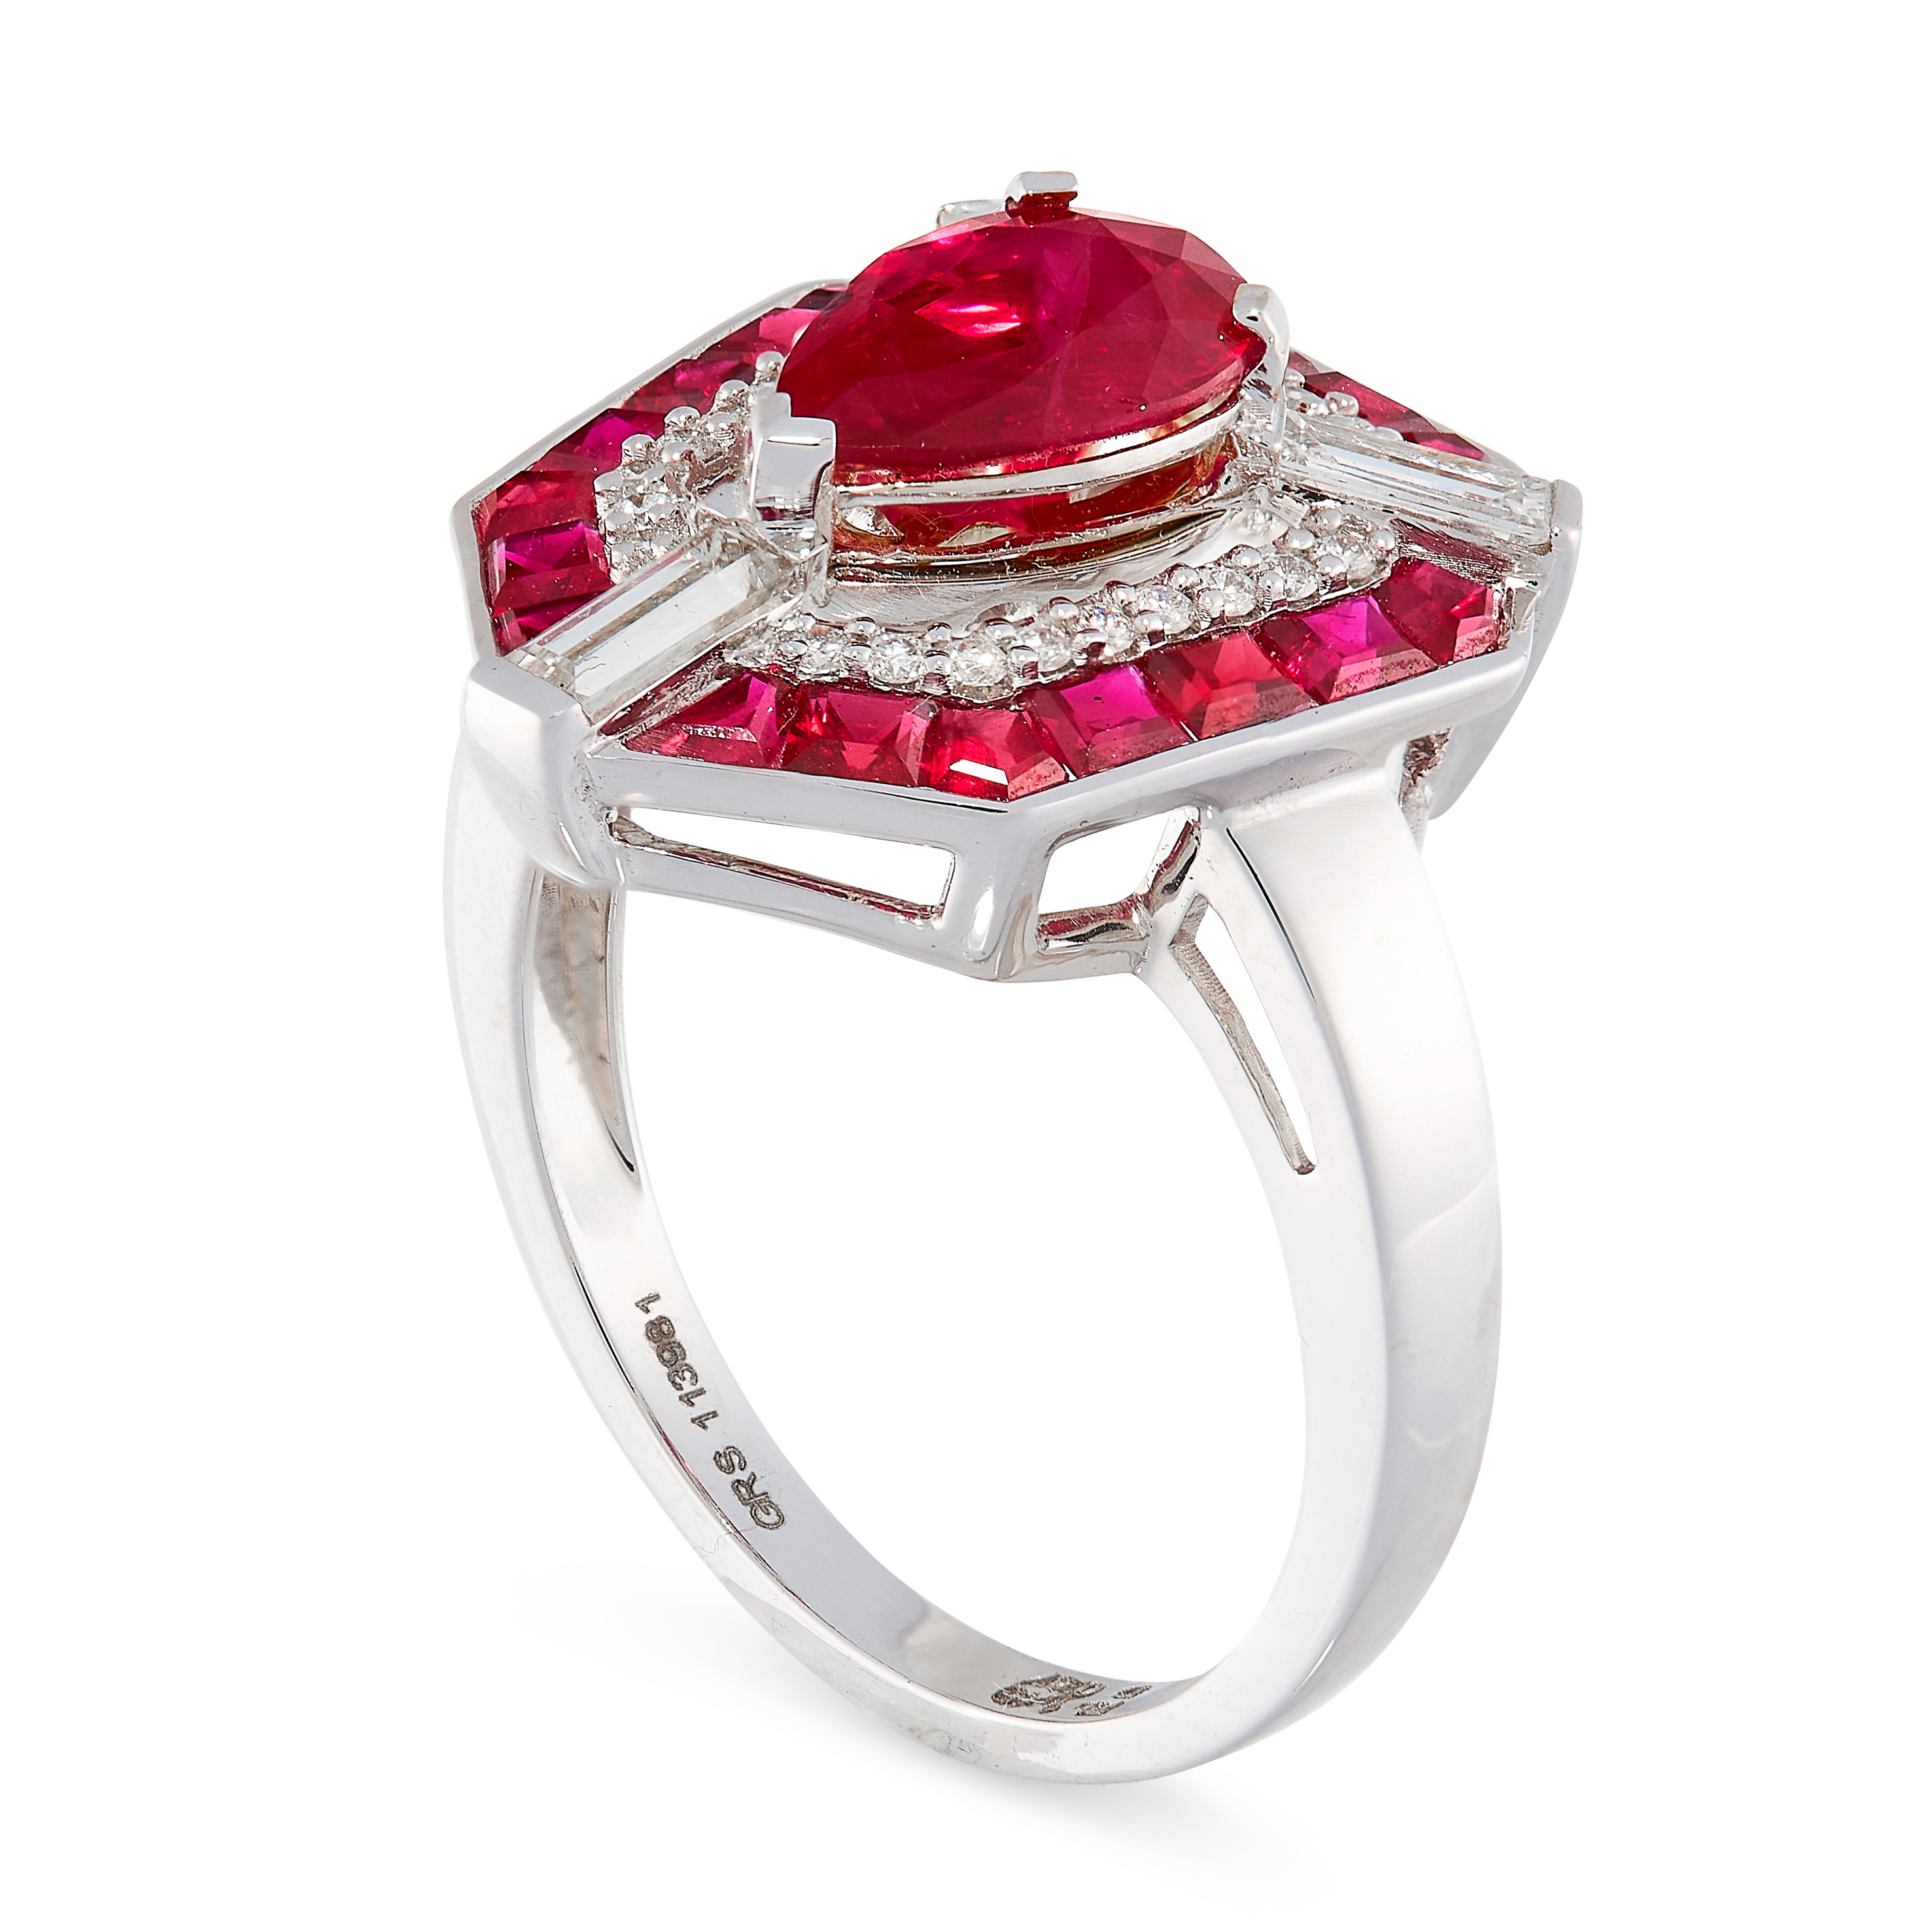 UNHEATED RUBY AND DIAMOND RING set with a pear cut ruby of 1.40 carats in a border of round cut - Image 2 of 2